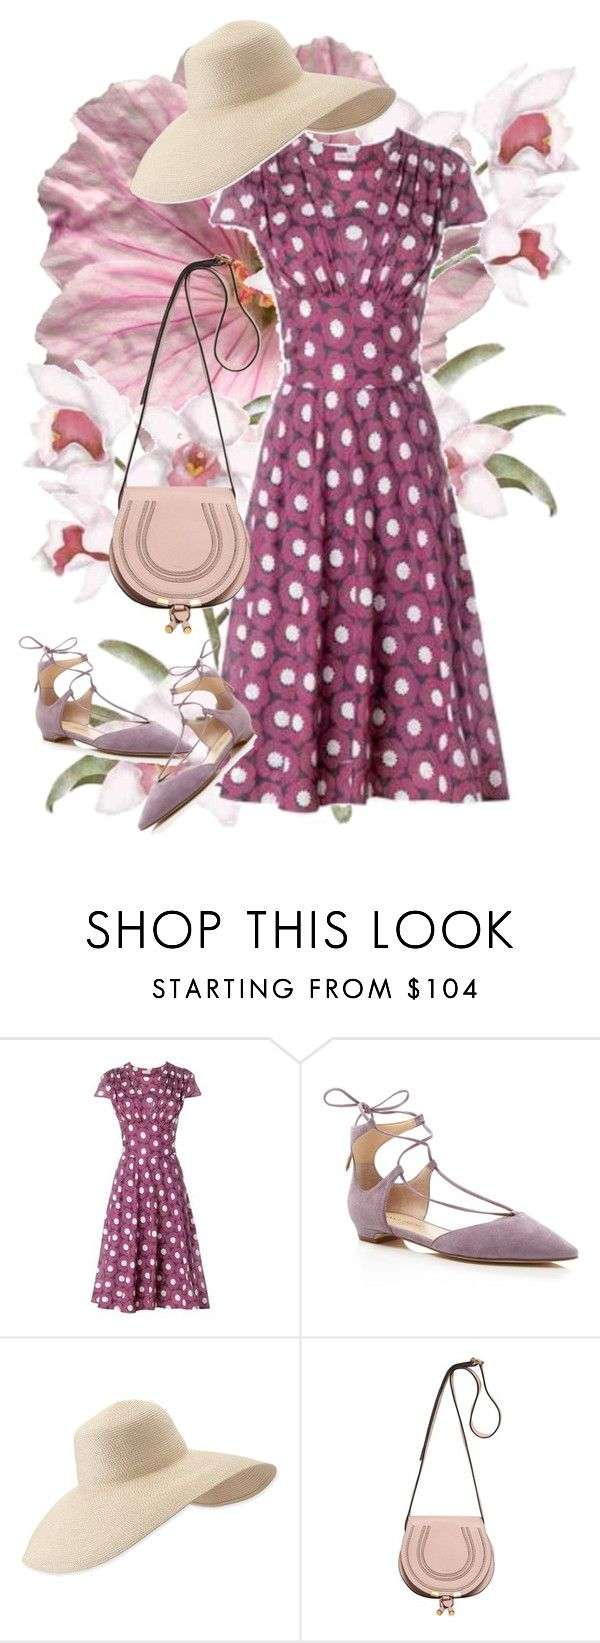 """lili"" by atijanam ❤ liked on Polyvore featuring Phase Eight, Ivanka Trump, Eric Javits and Chloé"